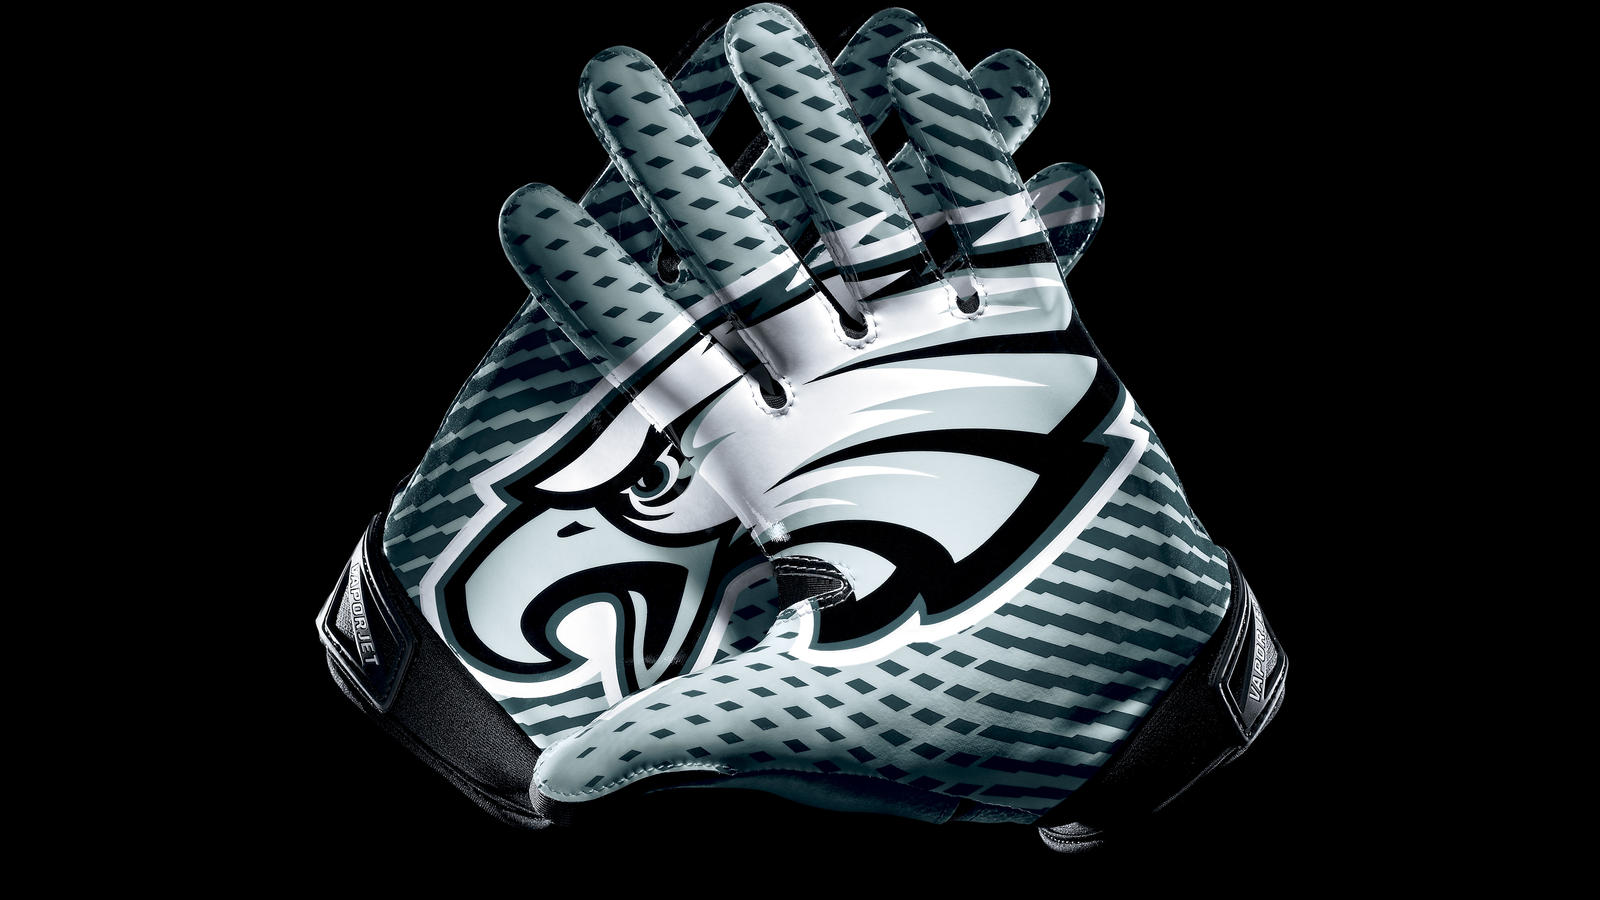 Philadelphia Eagles 2012 Nike Football Uniform Nike News